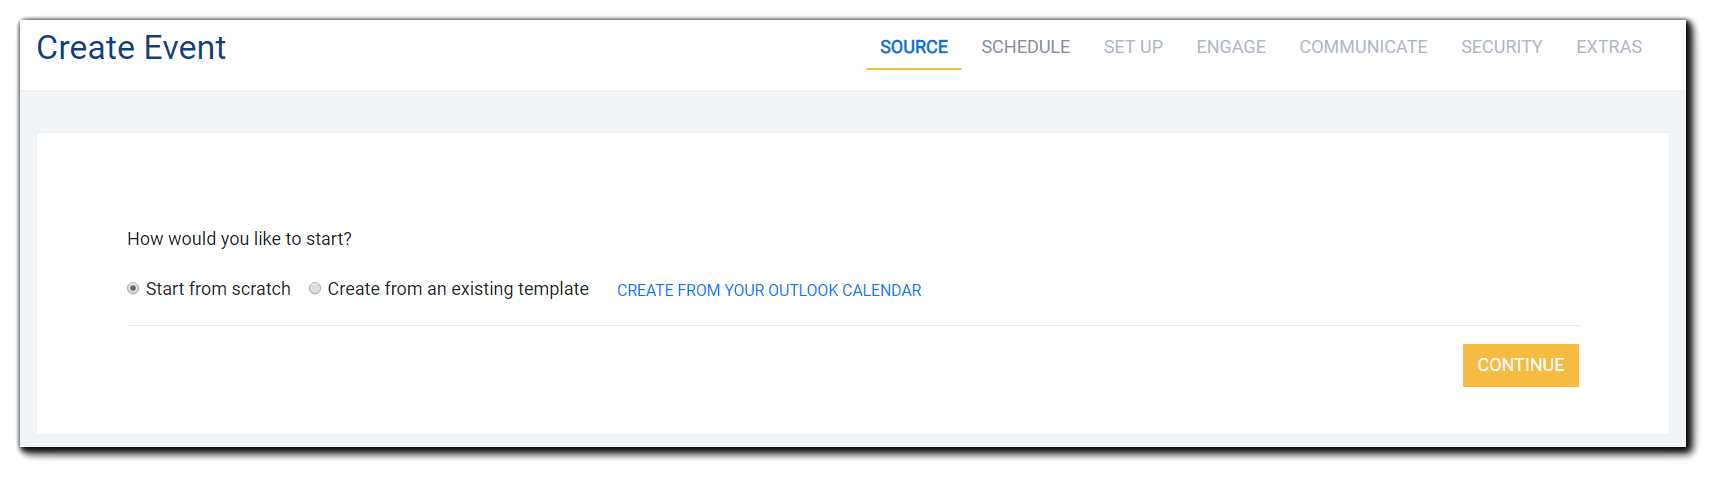 Screenshot: Event Creation options displayed: Start from scratch, Create from an existing template, and Create from your Outlook calendar.